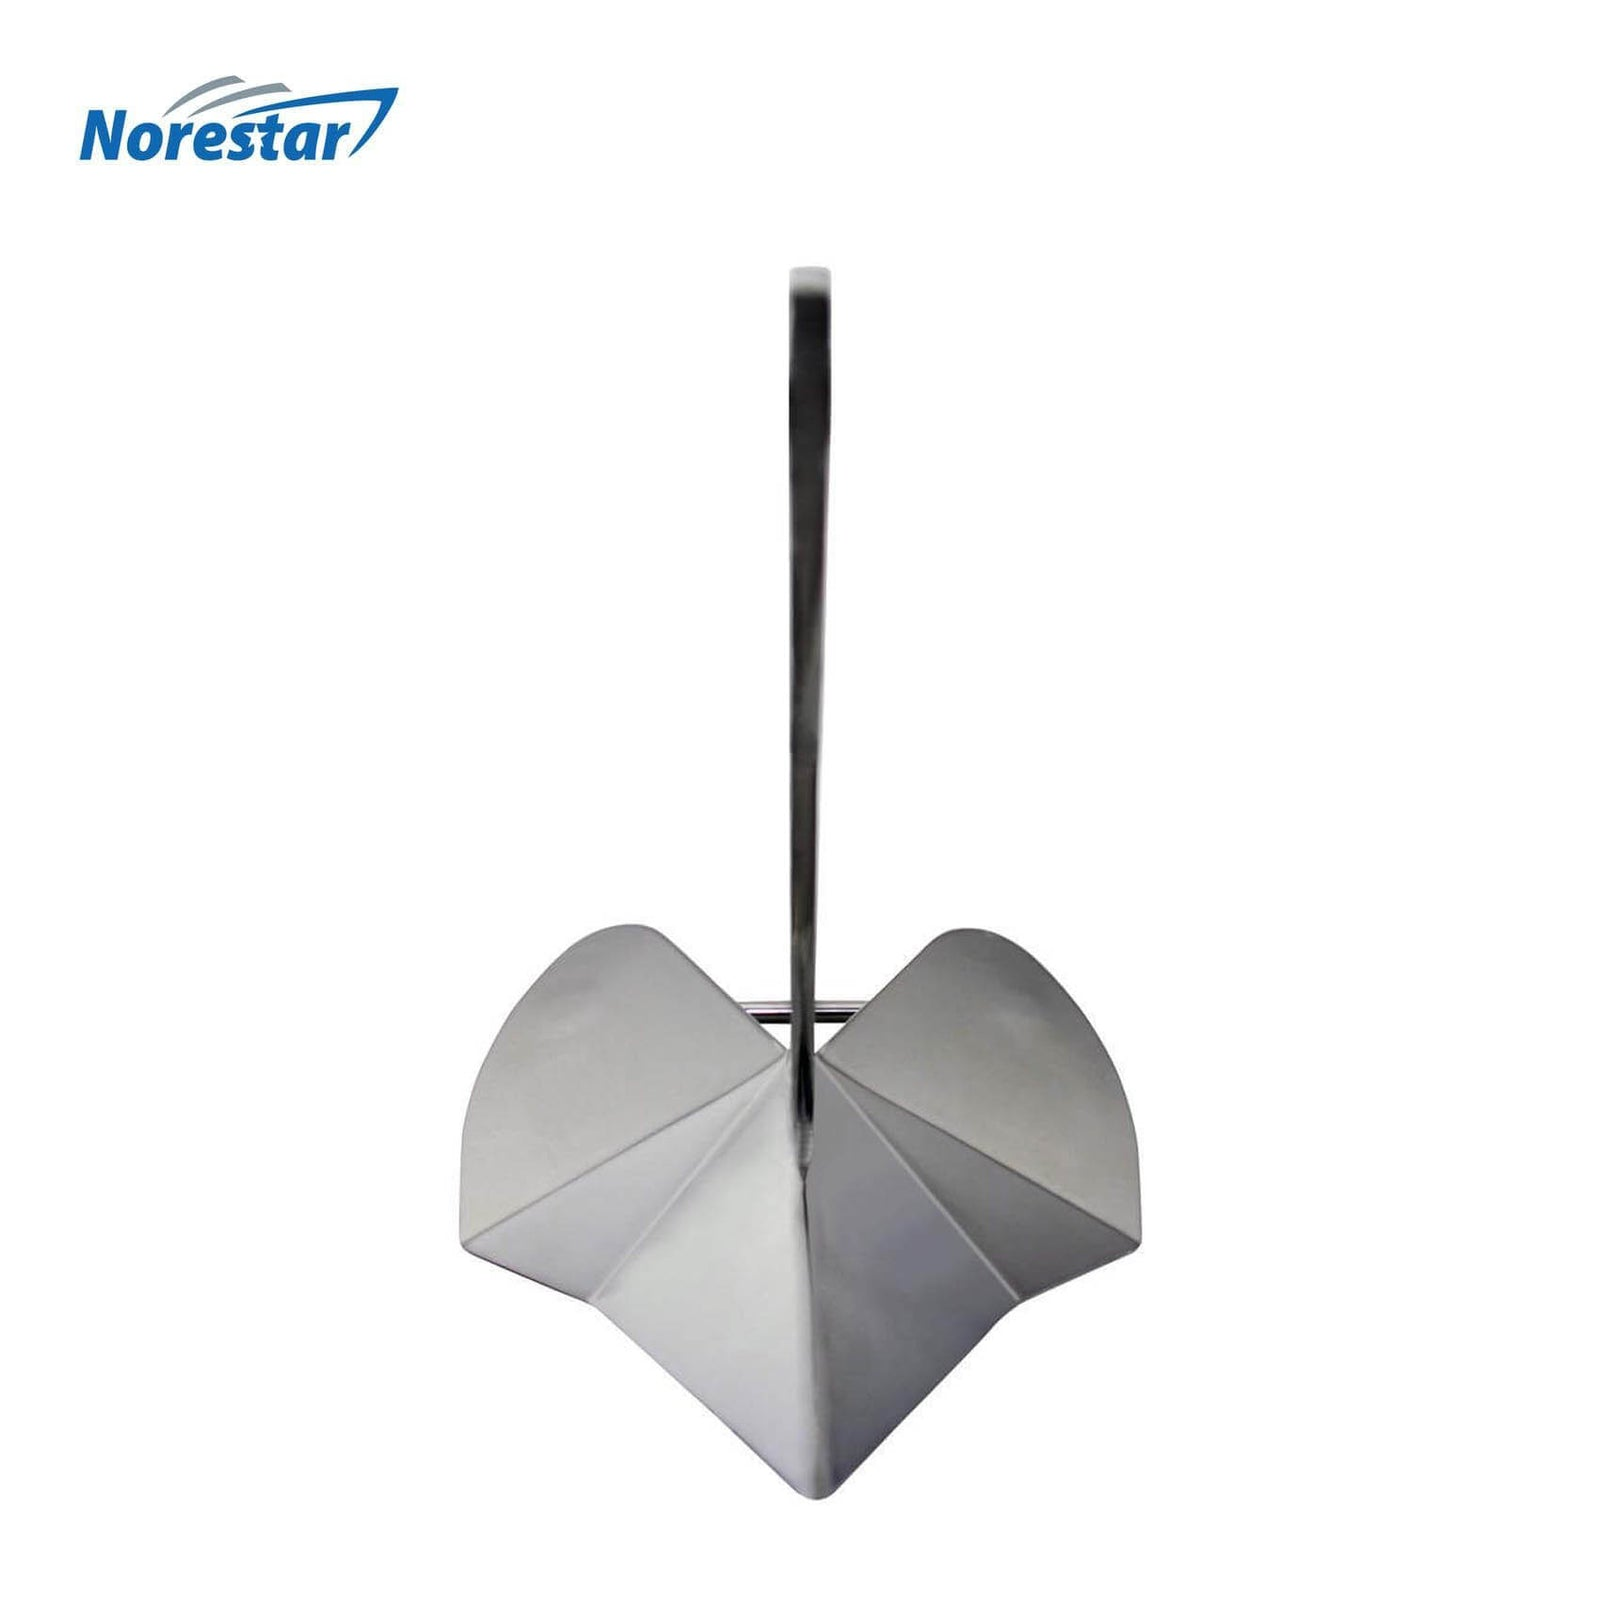 Stainless Steel Wing/Delta Boat Anchor by Norestar - Front